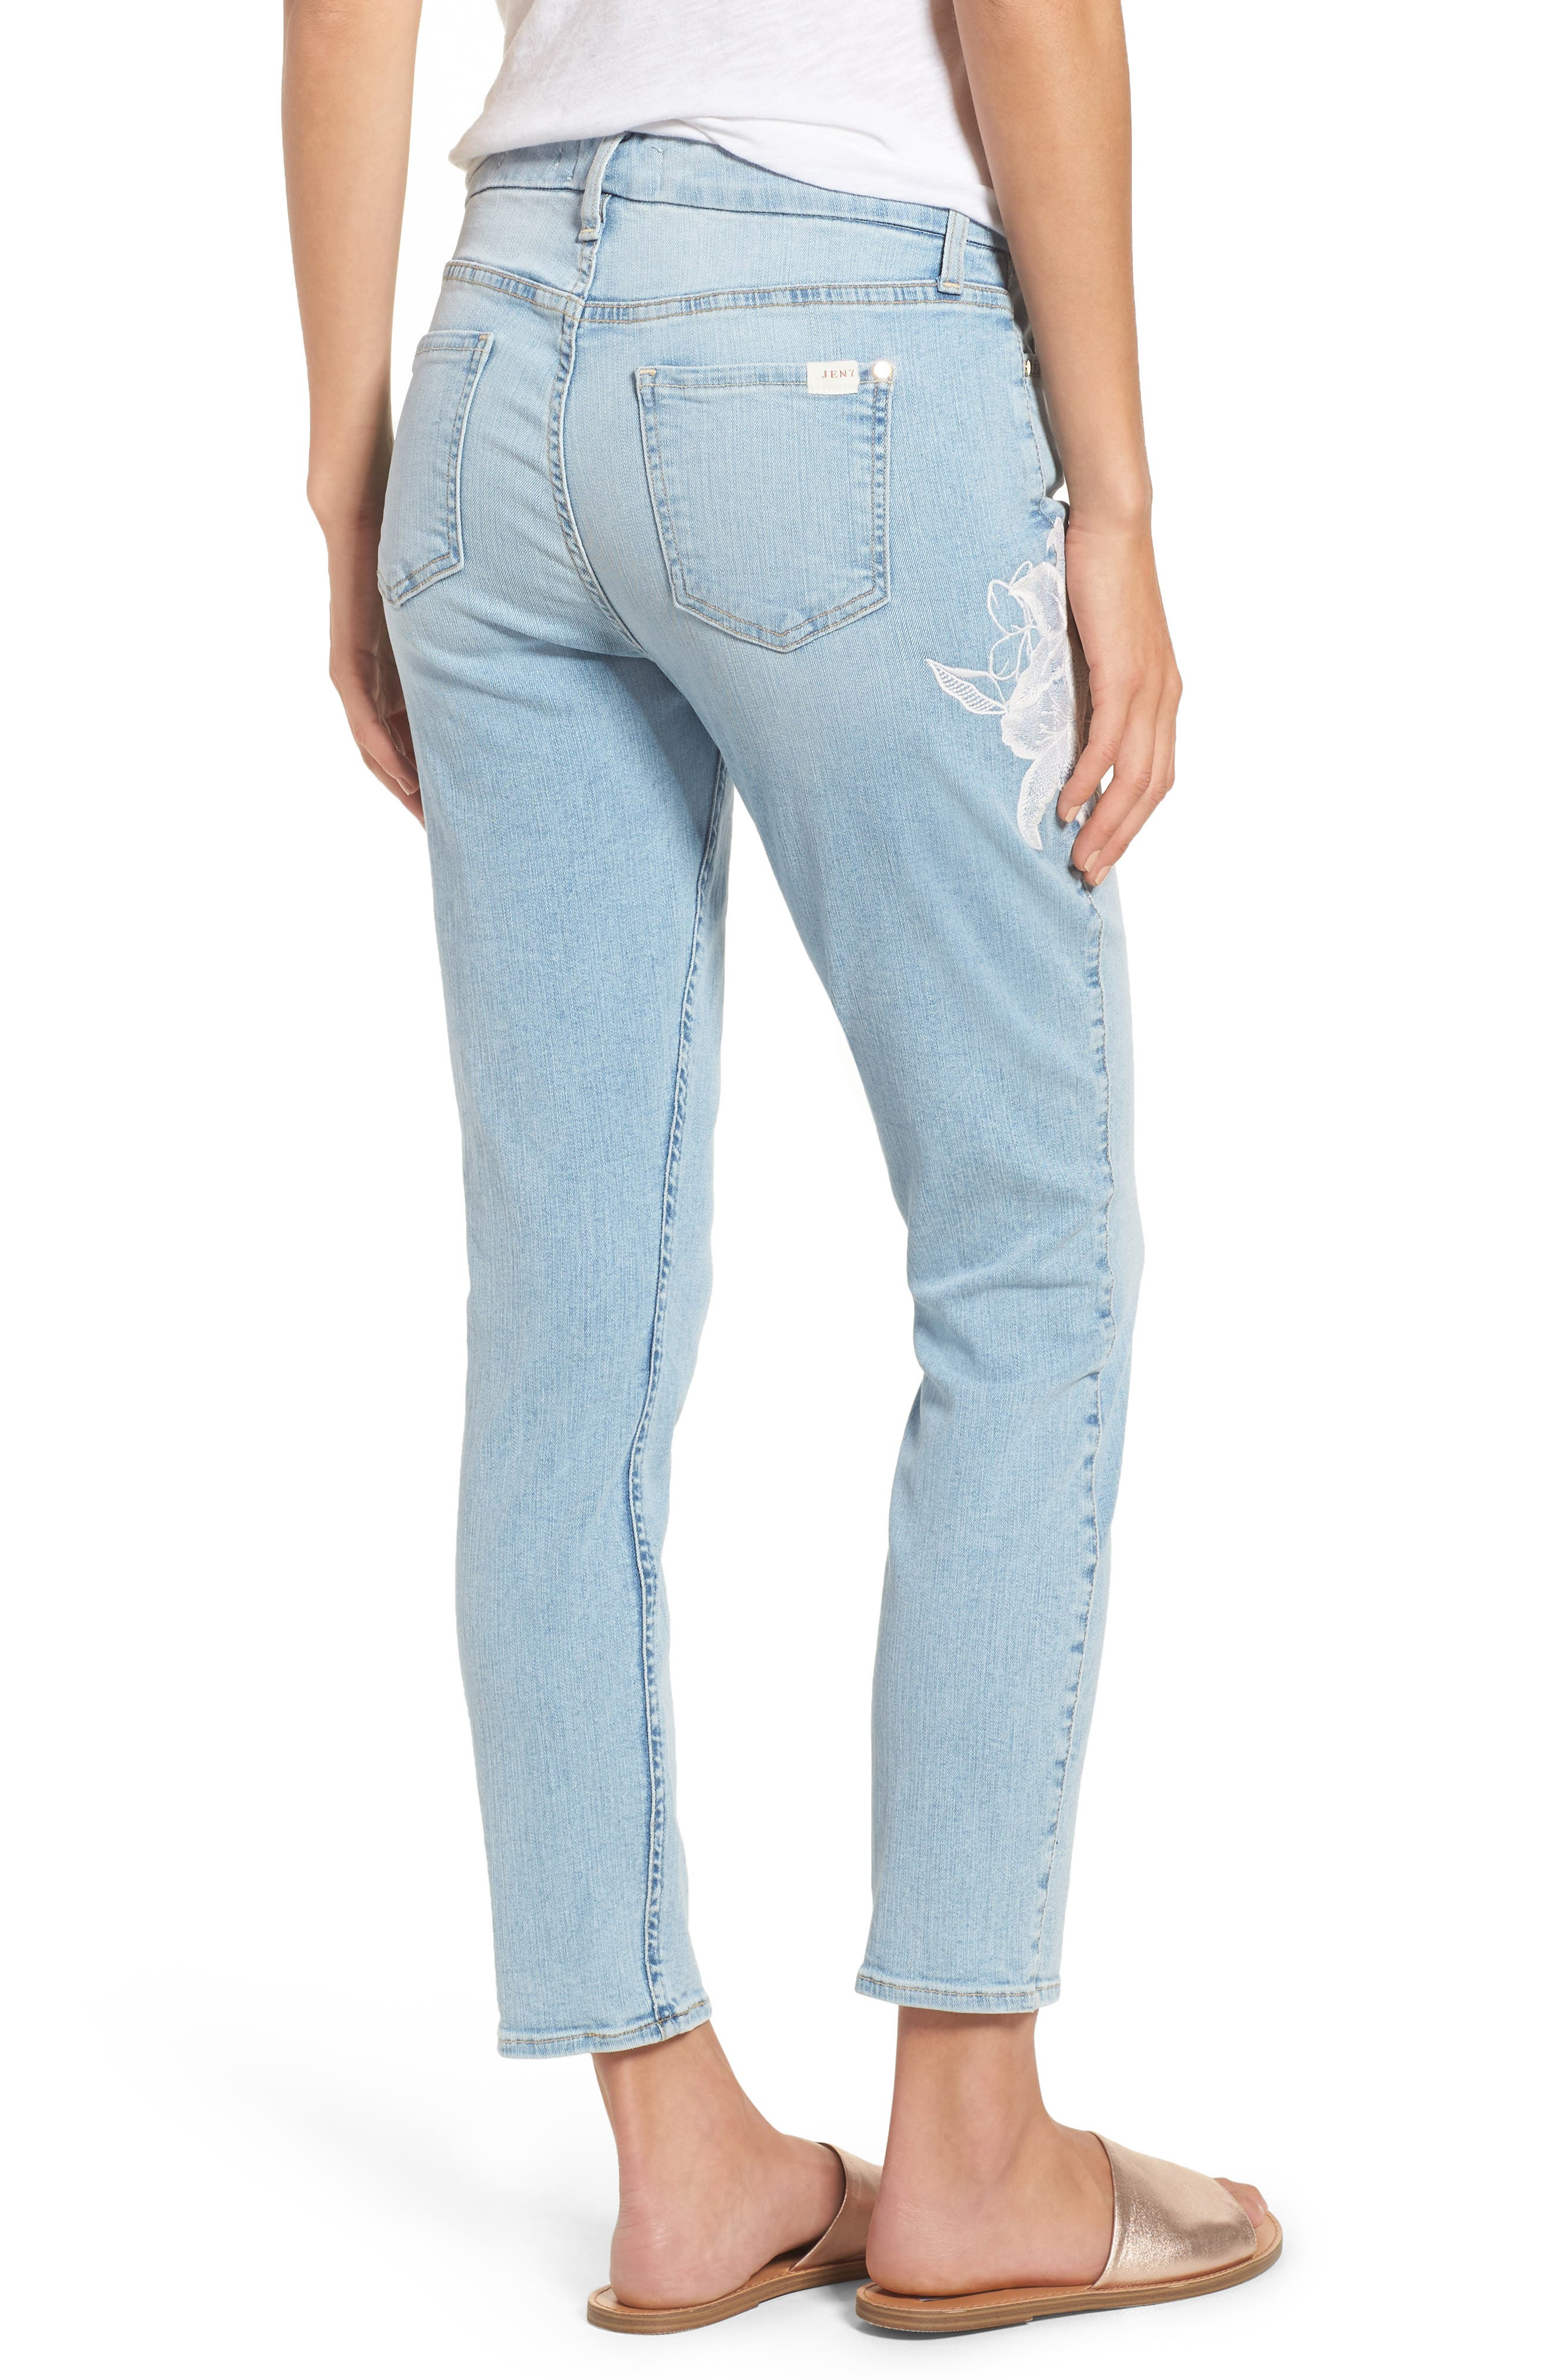 JEN7 BY 7 FOR ALL MANKIND, Embroidered Stretch Ankle Skinny Jeans, Alternate thumbnail 2, color, RICHE TOUCH PLAYA VISTA